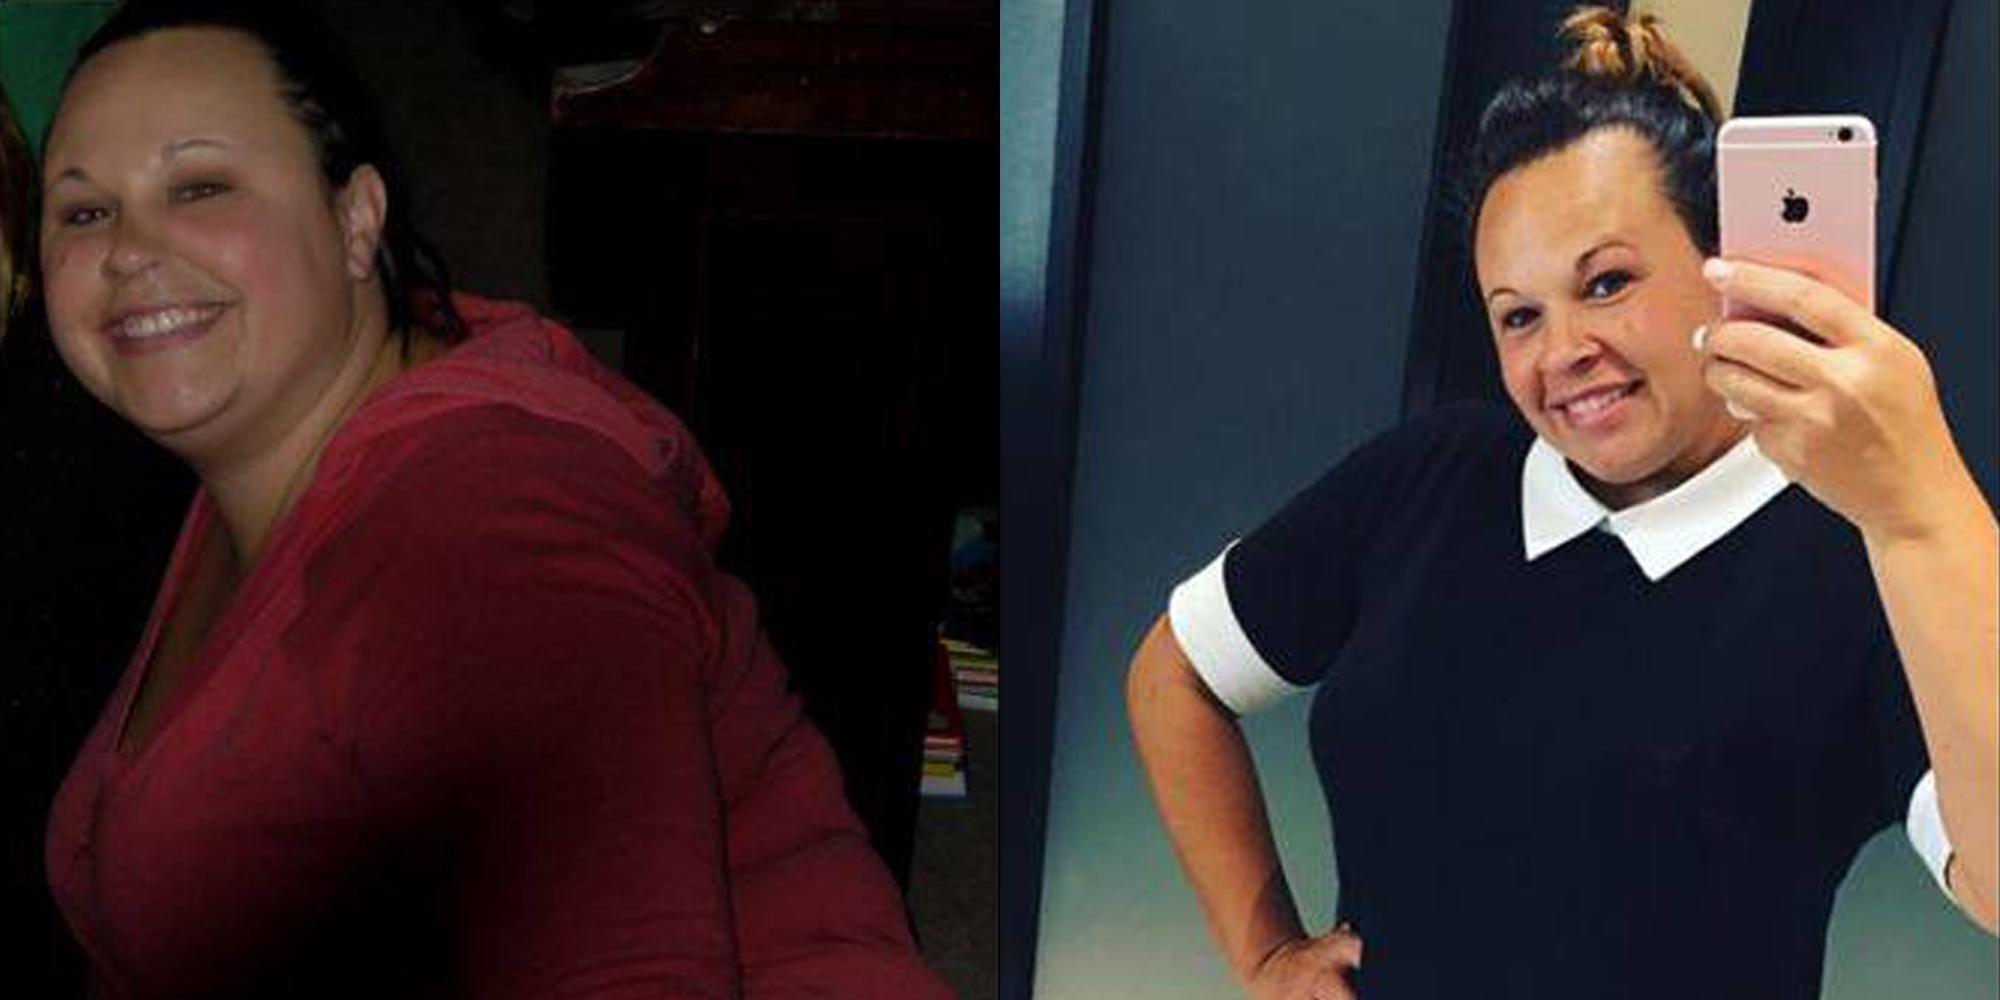 Woman Who Lost 80 Lbs Was Body-Shamed at Lululemon